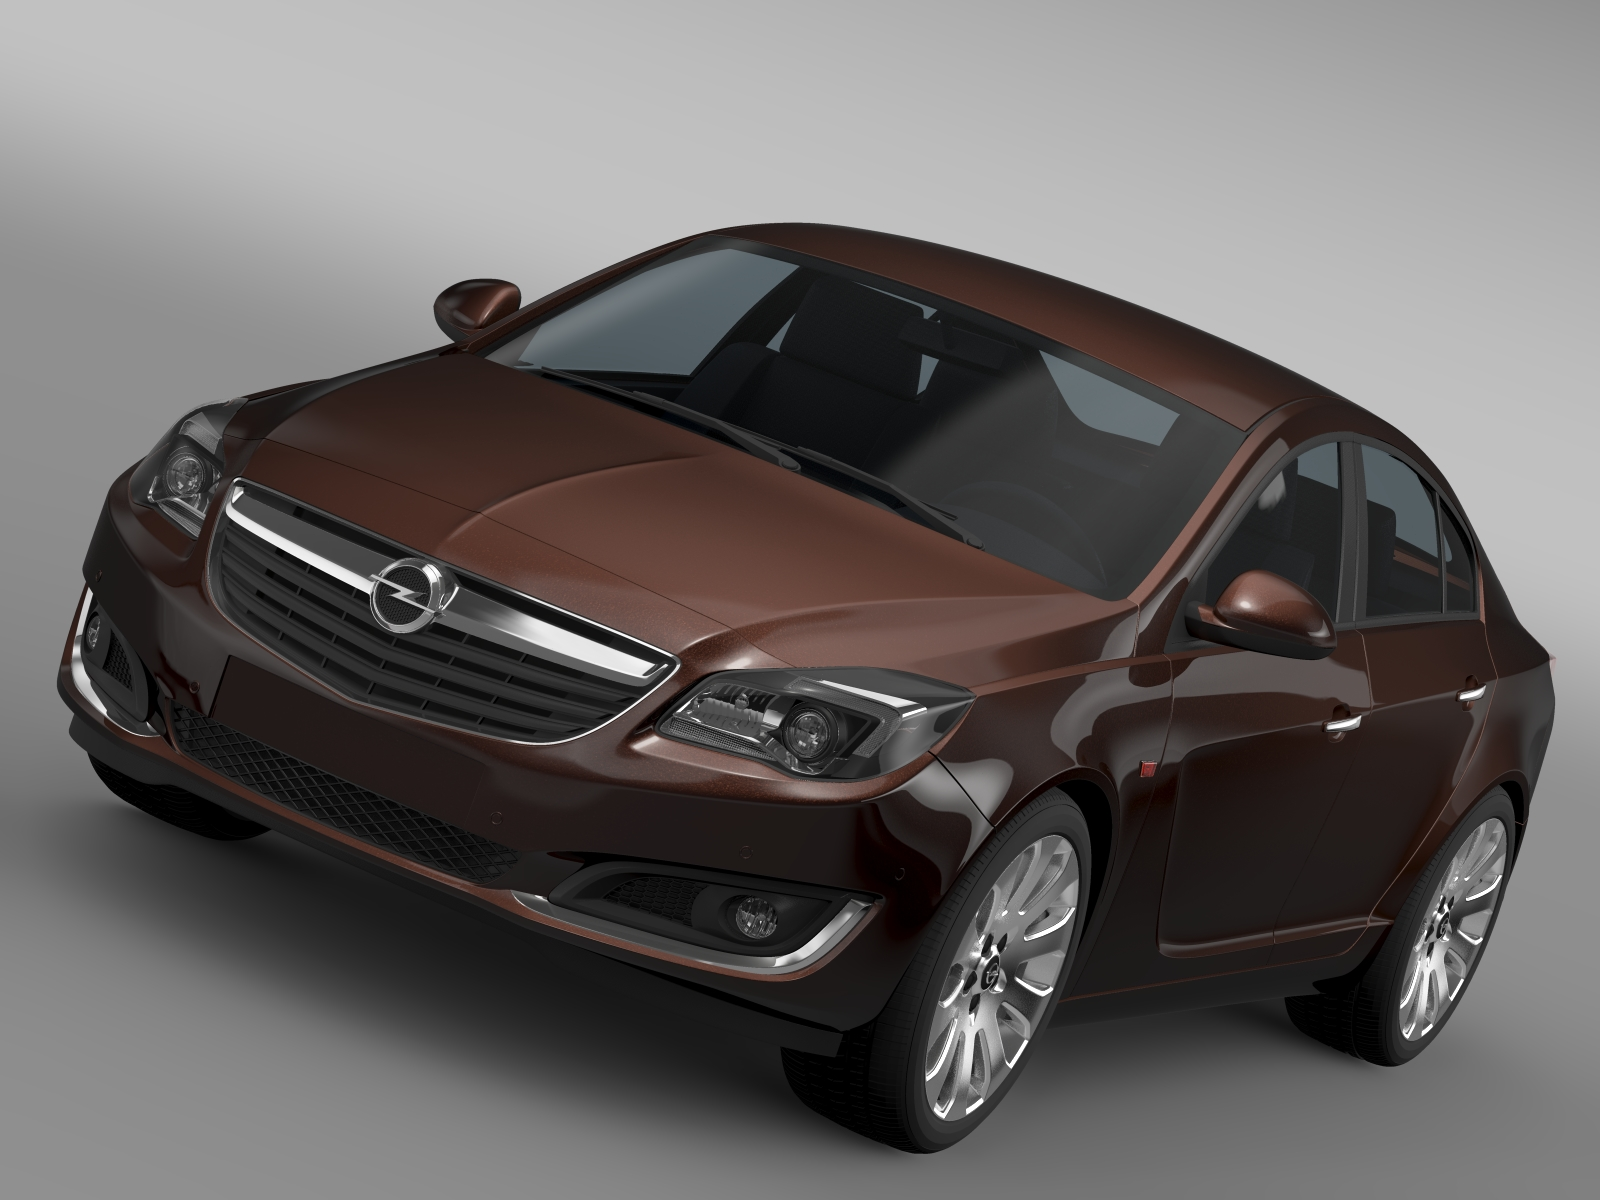 opel insignia turbo 2015 3d model 3ds max fbx c4d lwo ma